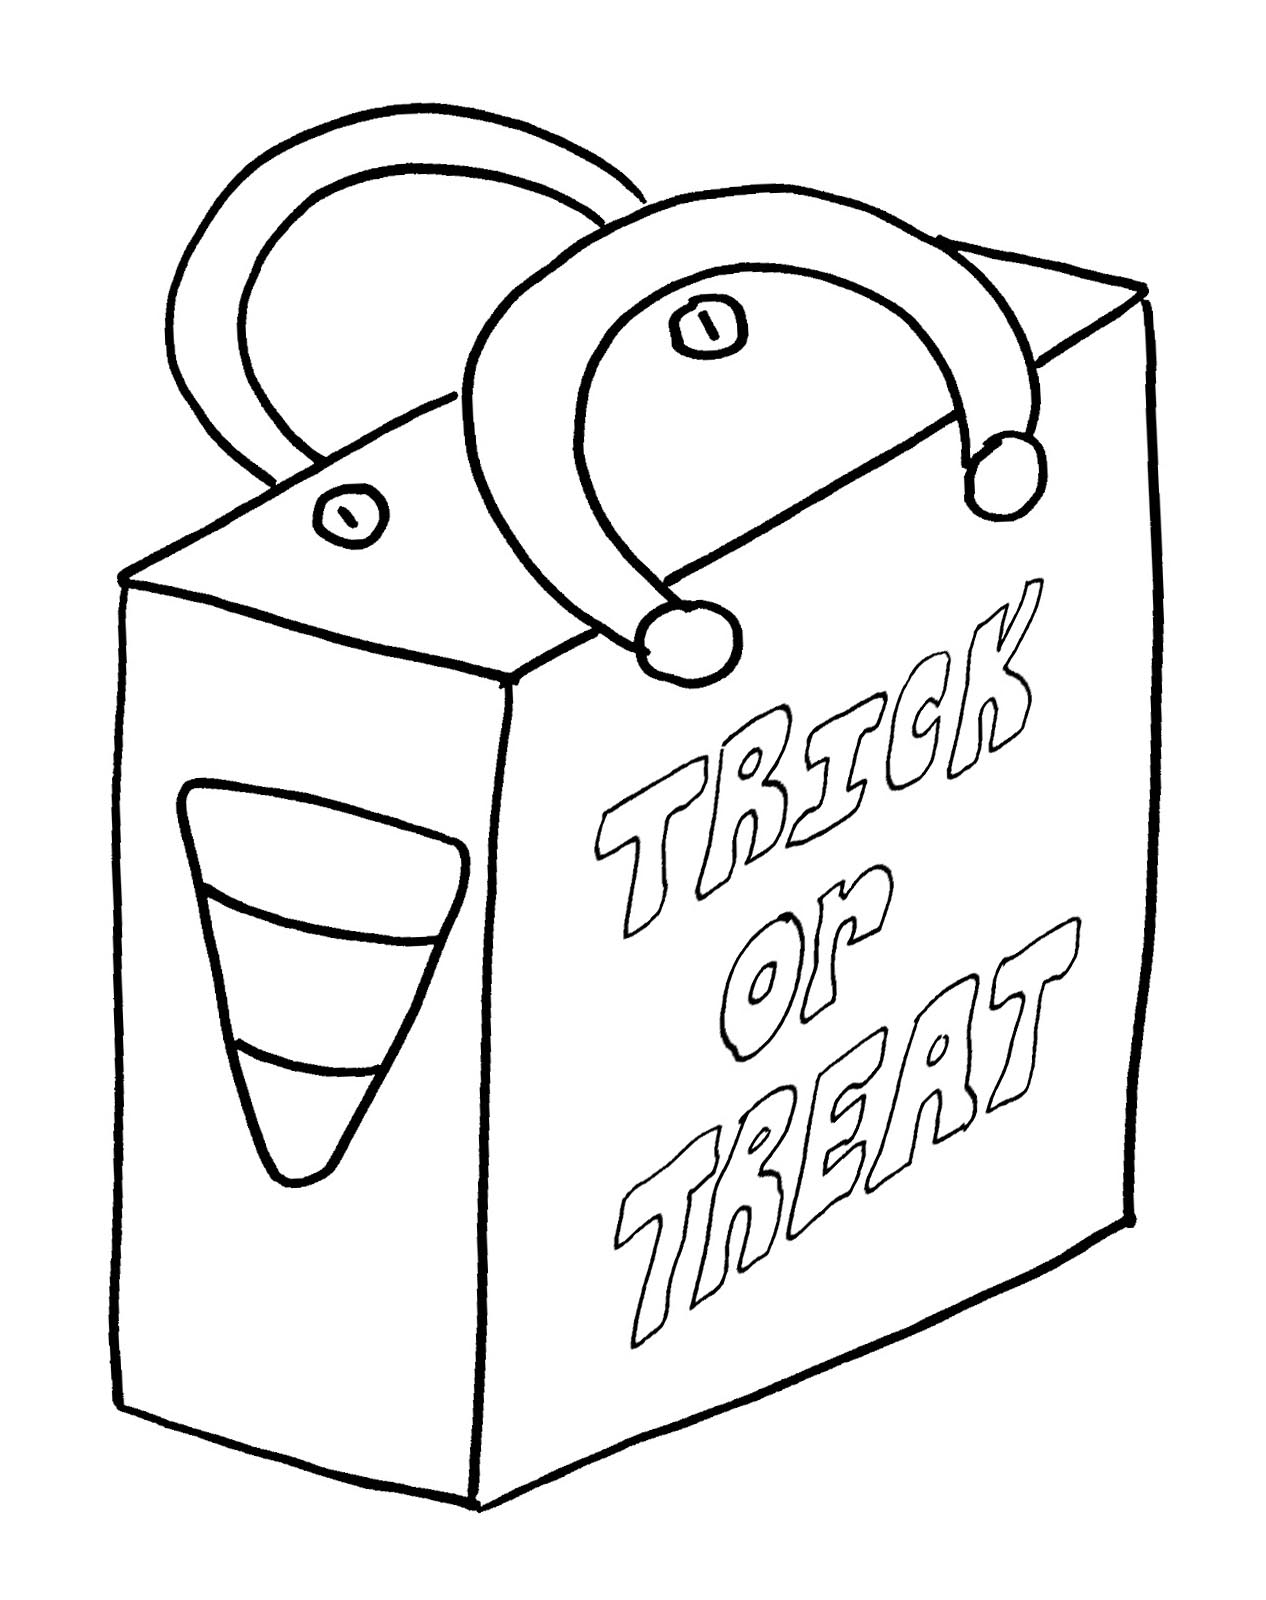 Free Printable Candy Corn Coloring Pages Free to Print printable